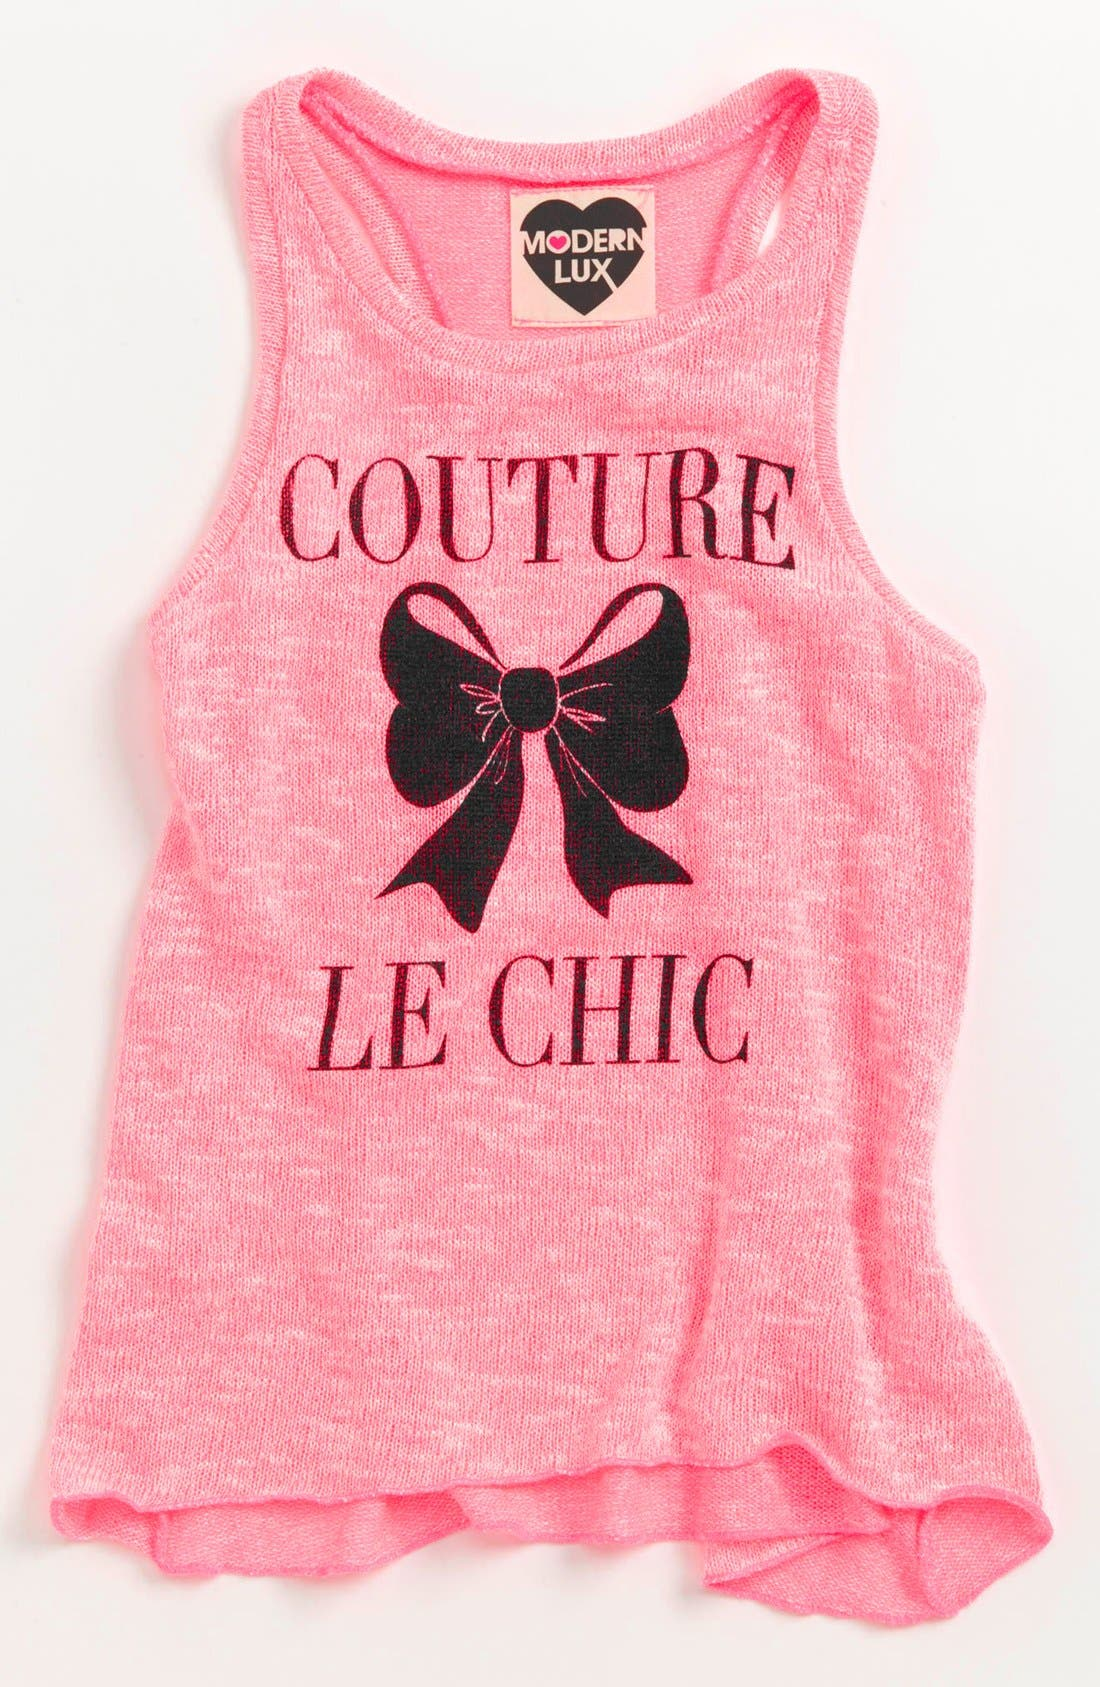 Alternate Image 1 Selected - Modern Lux Knit Tank Top (Big Girls)